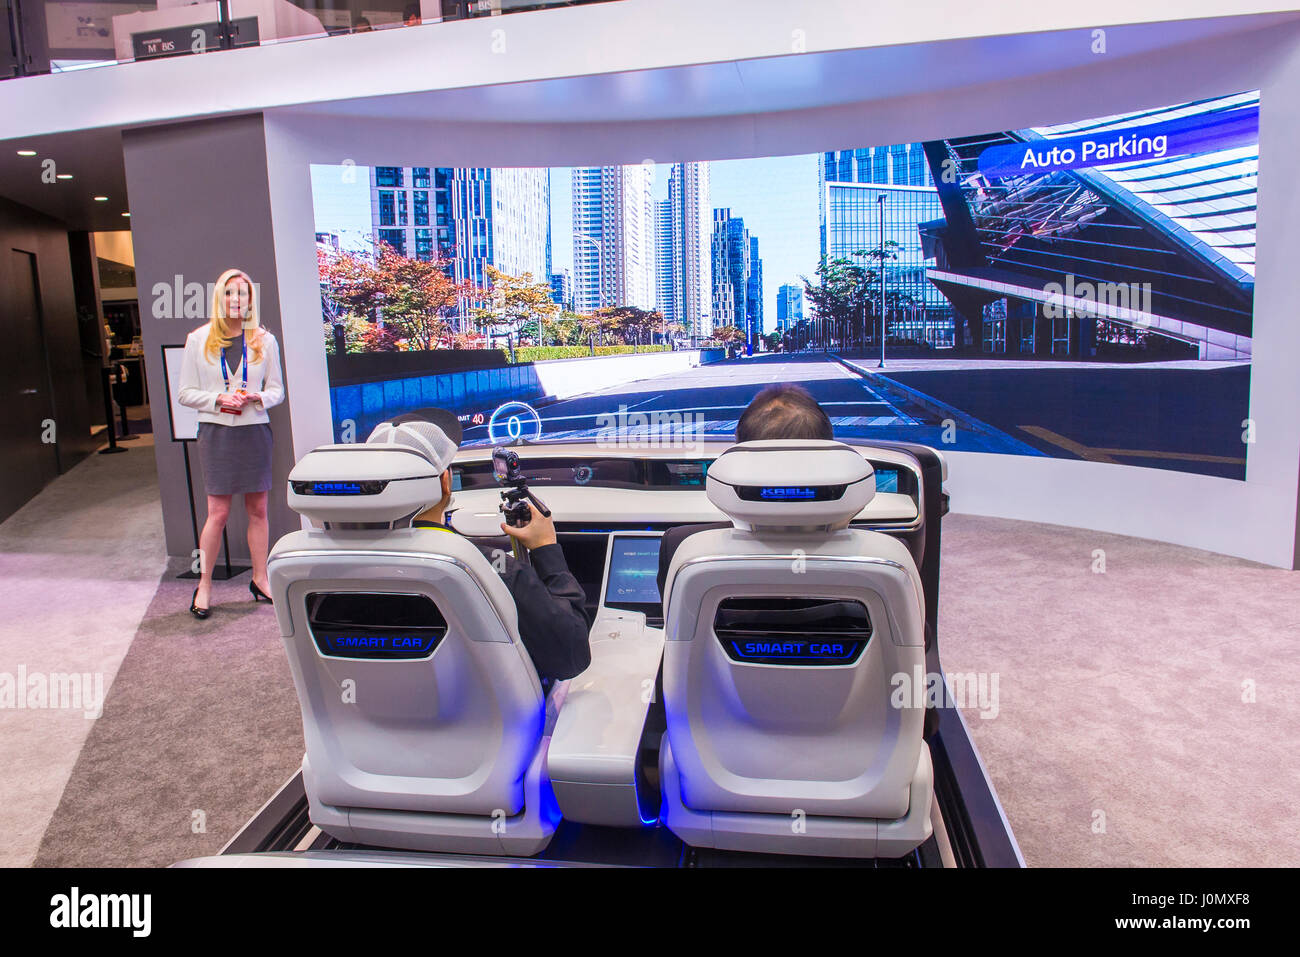 The Hyundai Mobis Concept Car Simulator At The Ces Show In